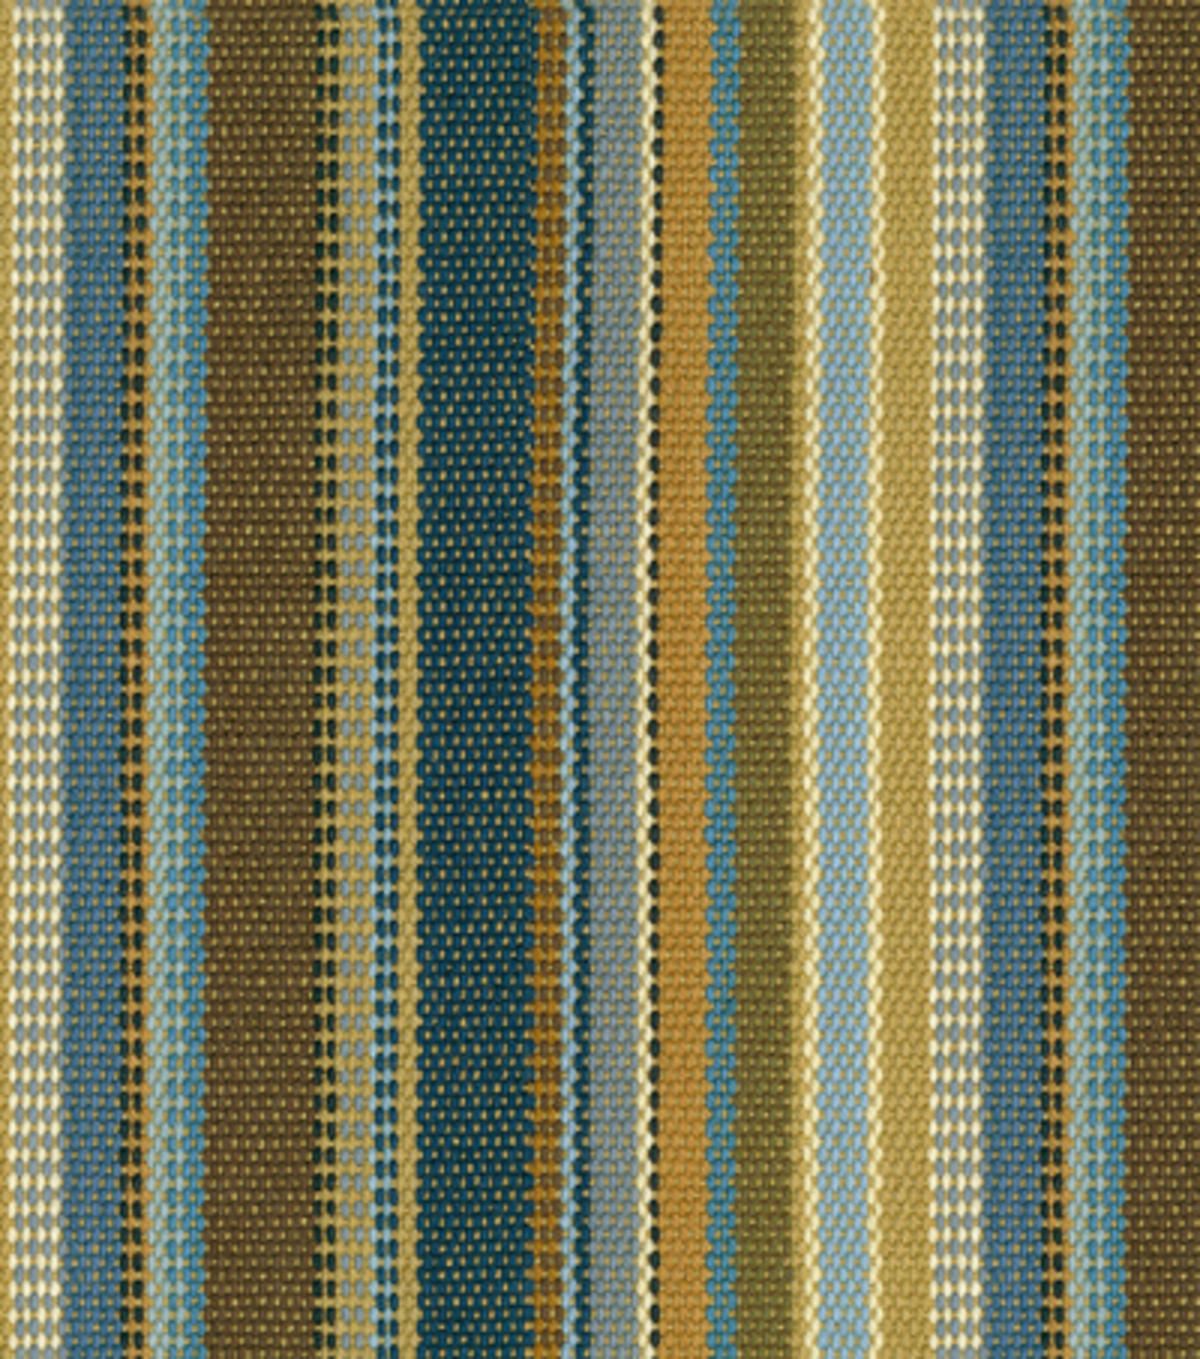 Home Decor 8\u0022x8\u0022 Fabric Swatch-Upholstery Fabric-Waverly Saddle Stripe/Denim